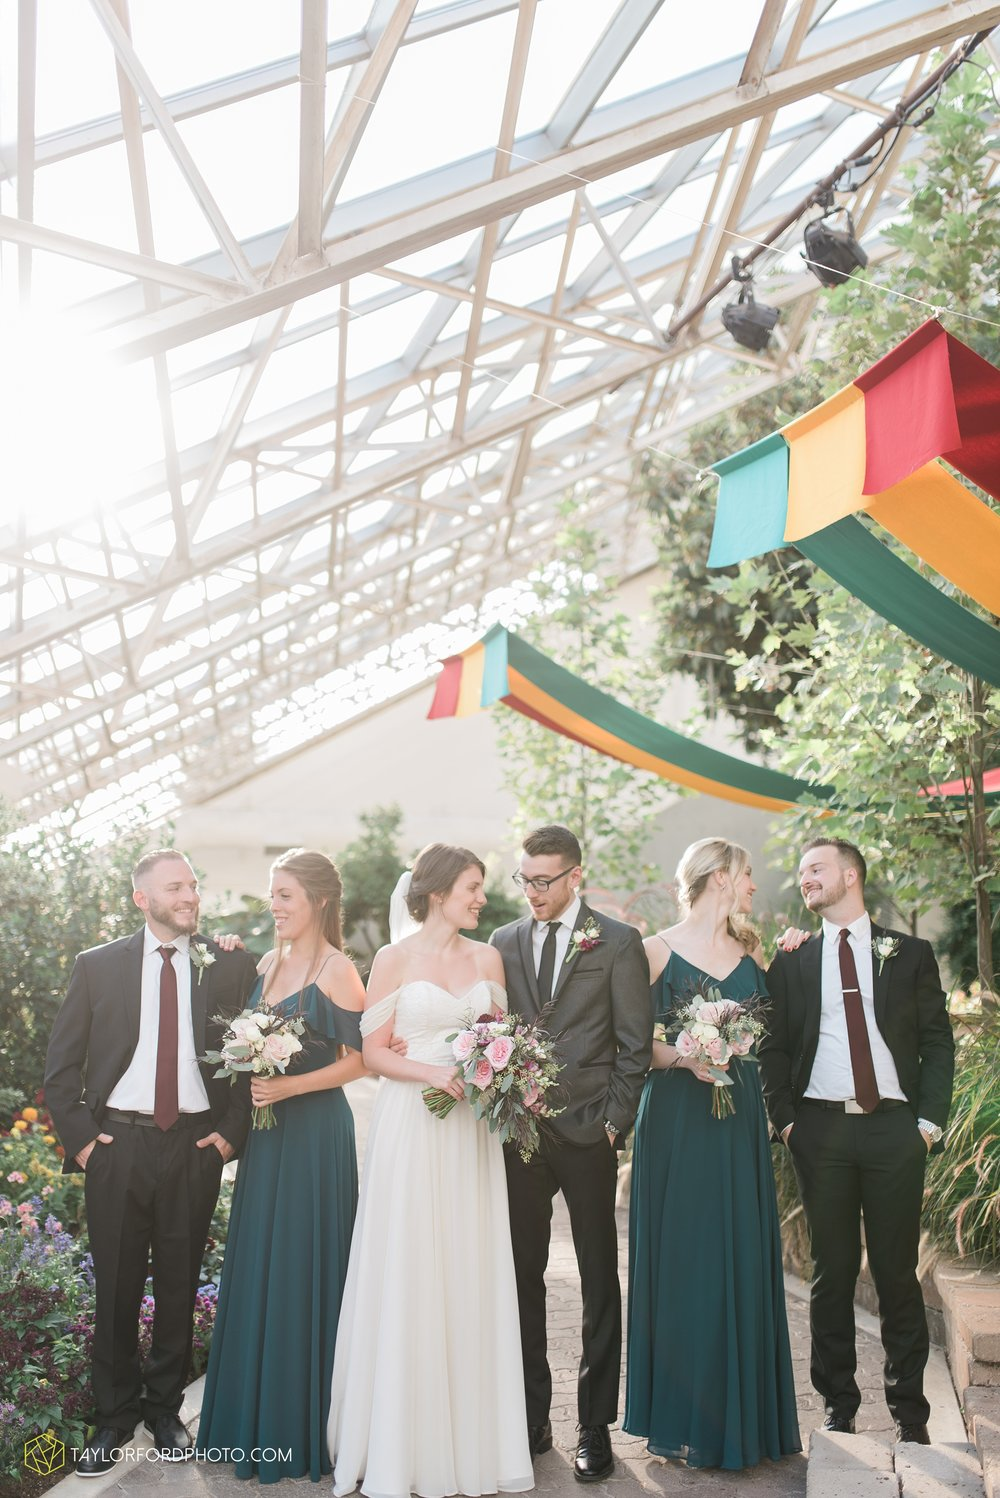 fort-wayne-indiana-wedding-photographer-Taylor-Ford-Photography-foellinger-freimann-botanical-conservatory_3966.jpg